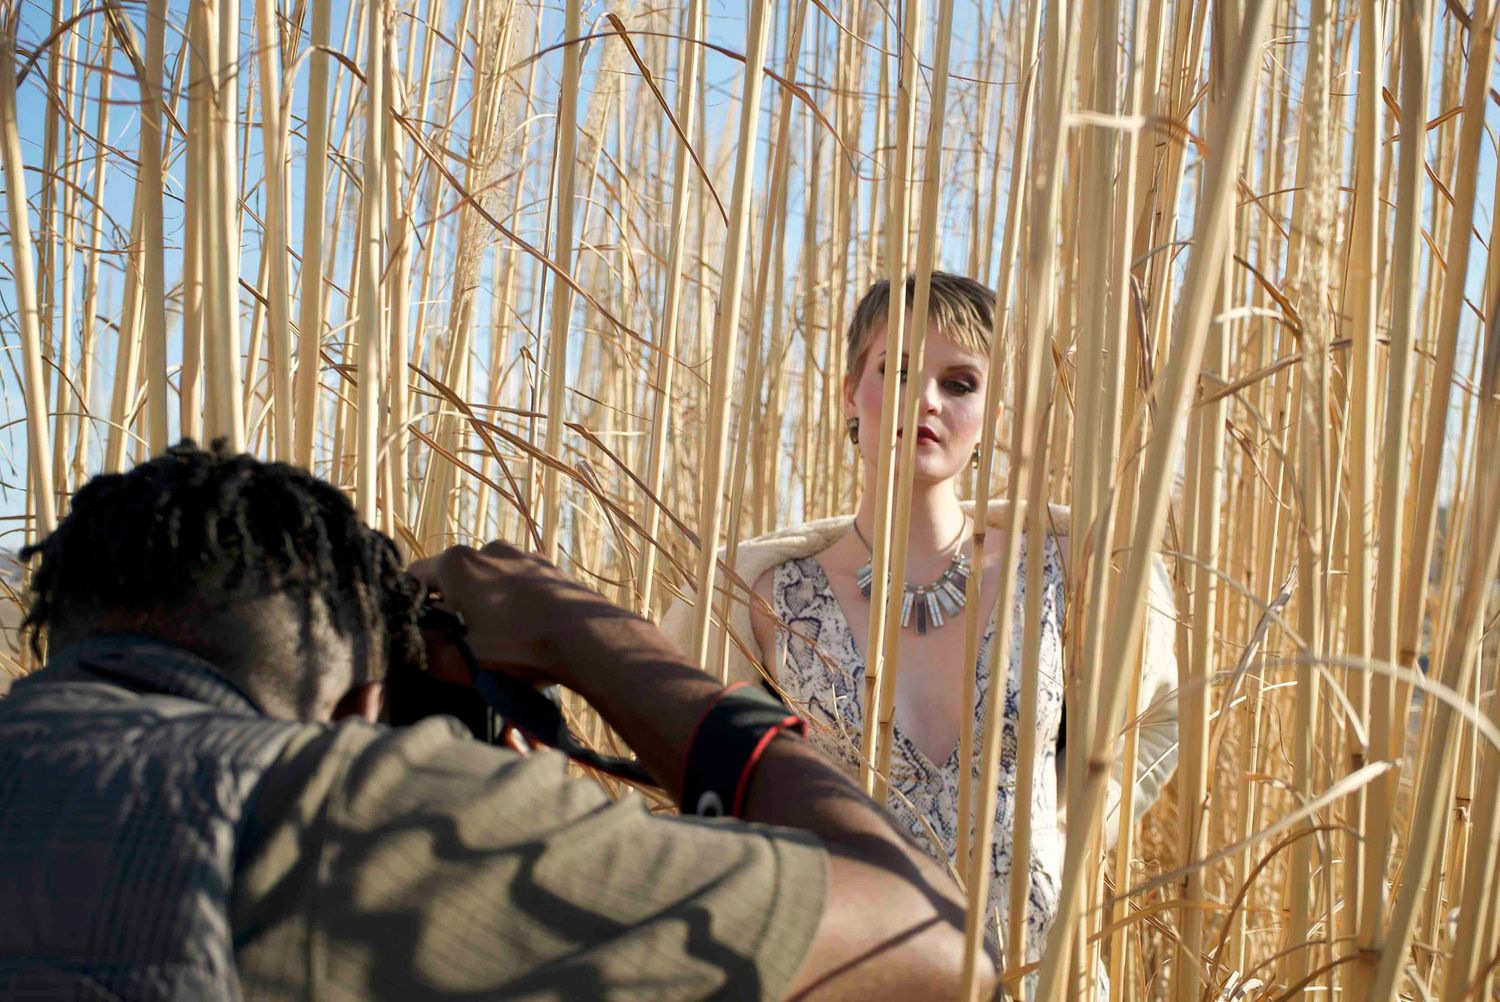 Model Racquel Parson being photographer William Mason in tall grass.